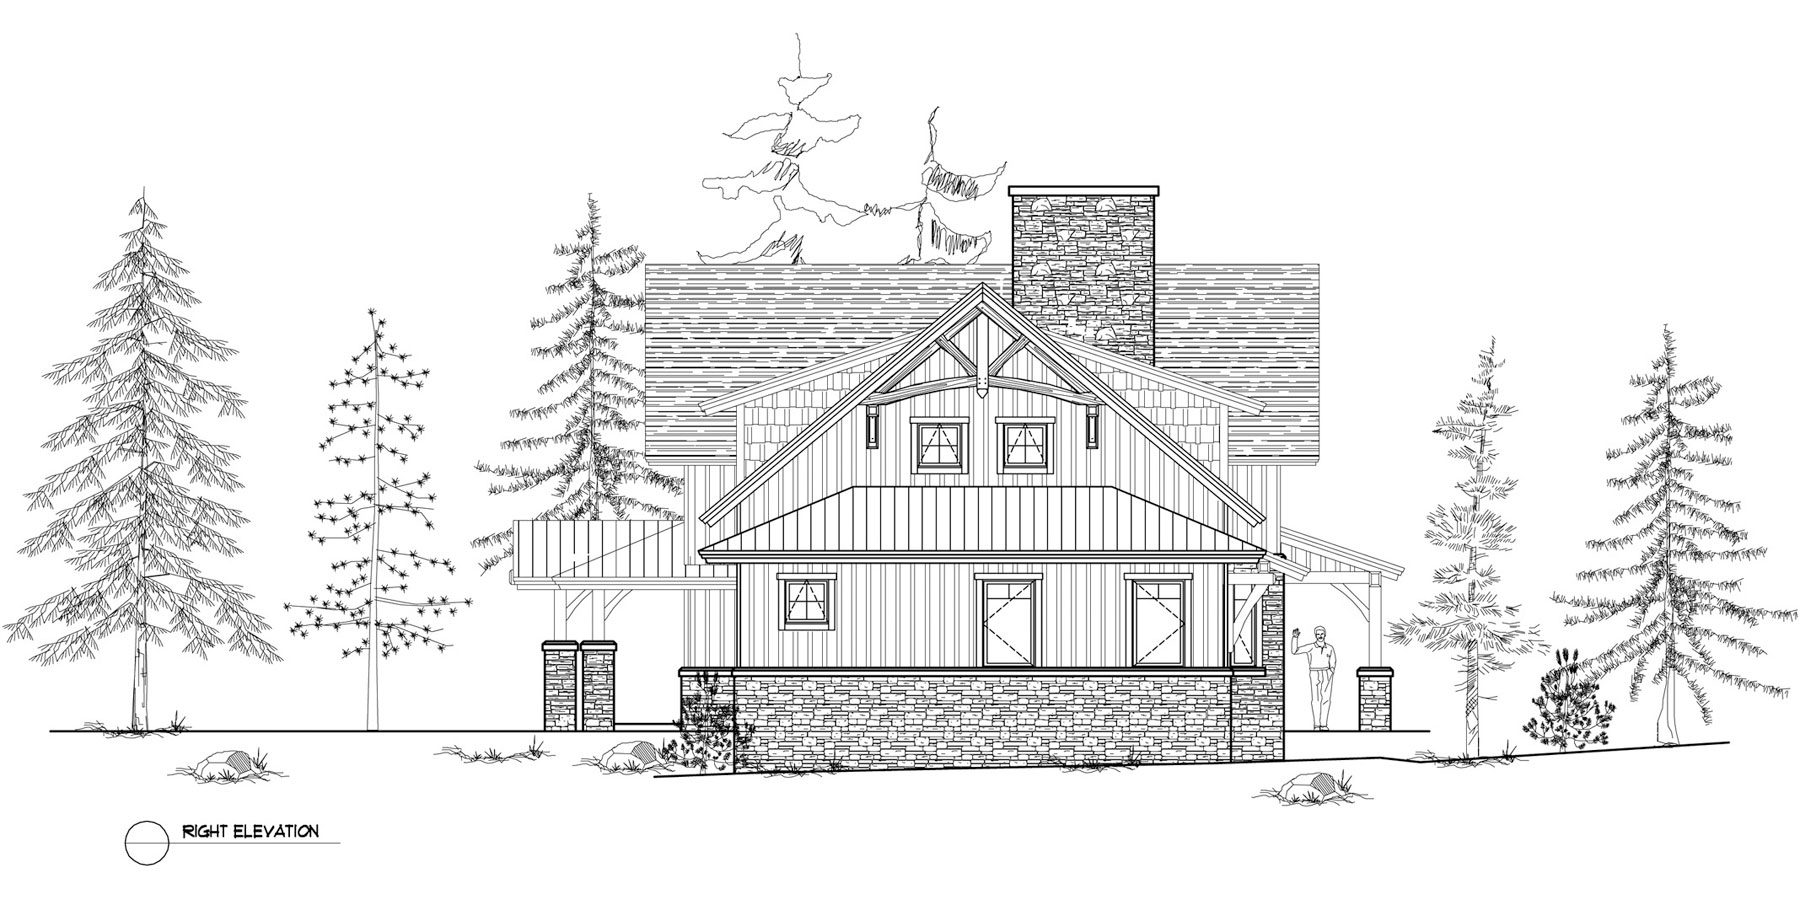 Normerica Timber Frames, House Plan, The Dufferin 3512, Right Elevation